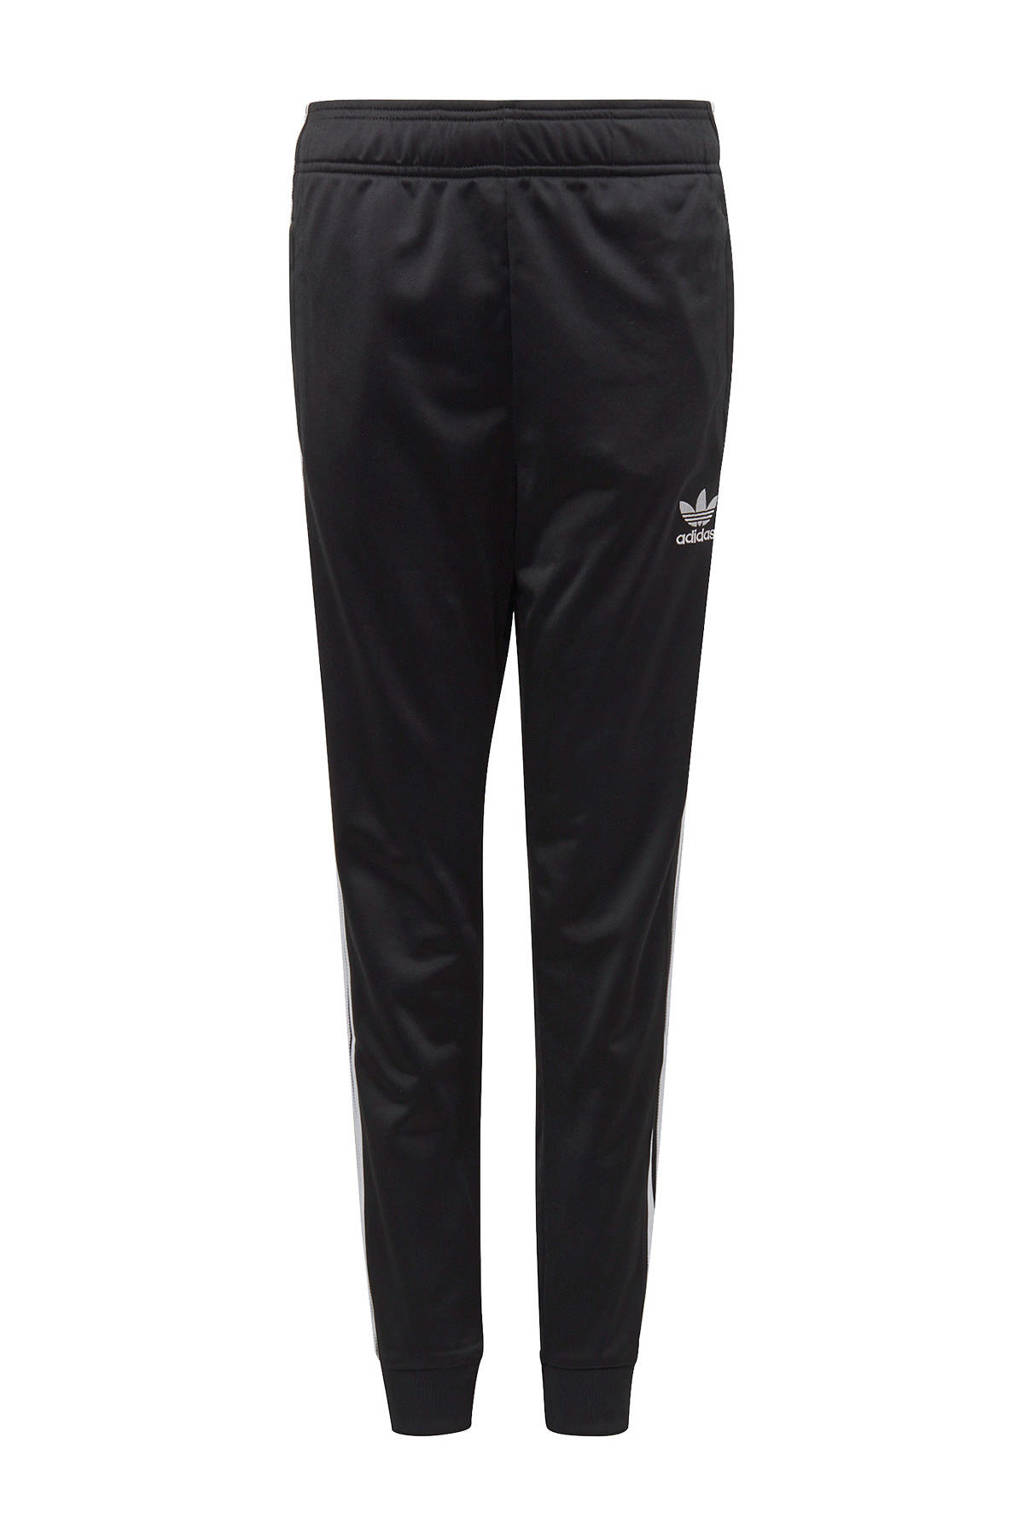 adidas Originals   joggingbroek zwart, Zwart